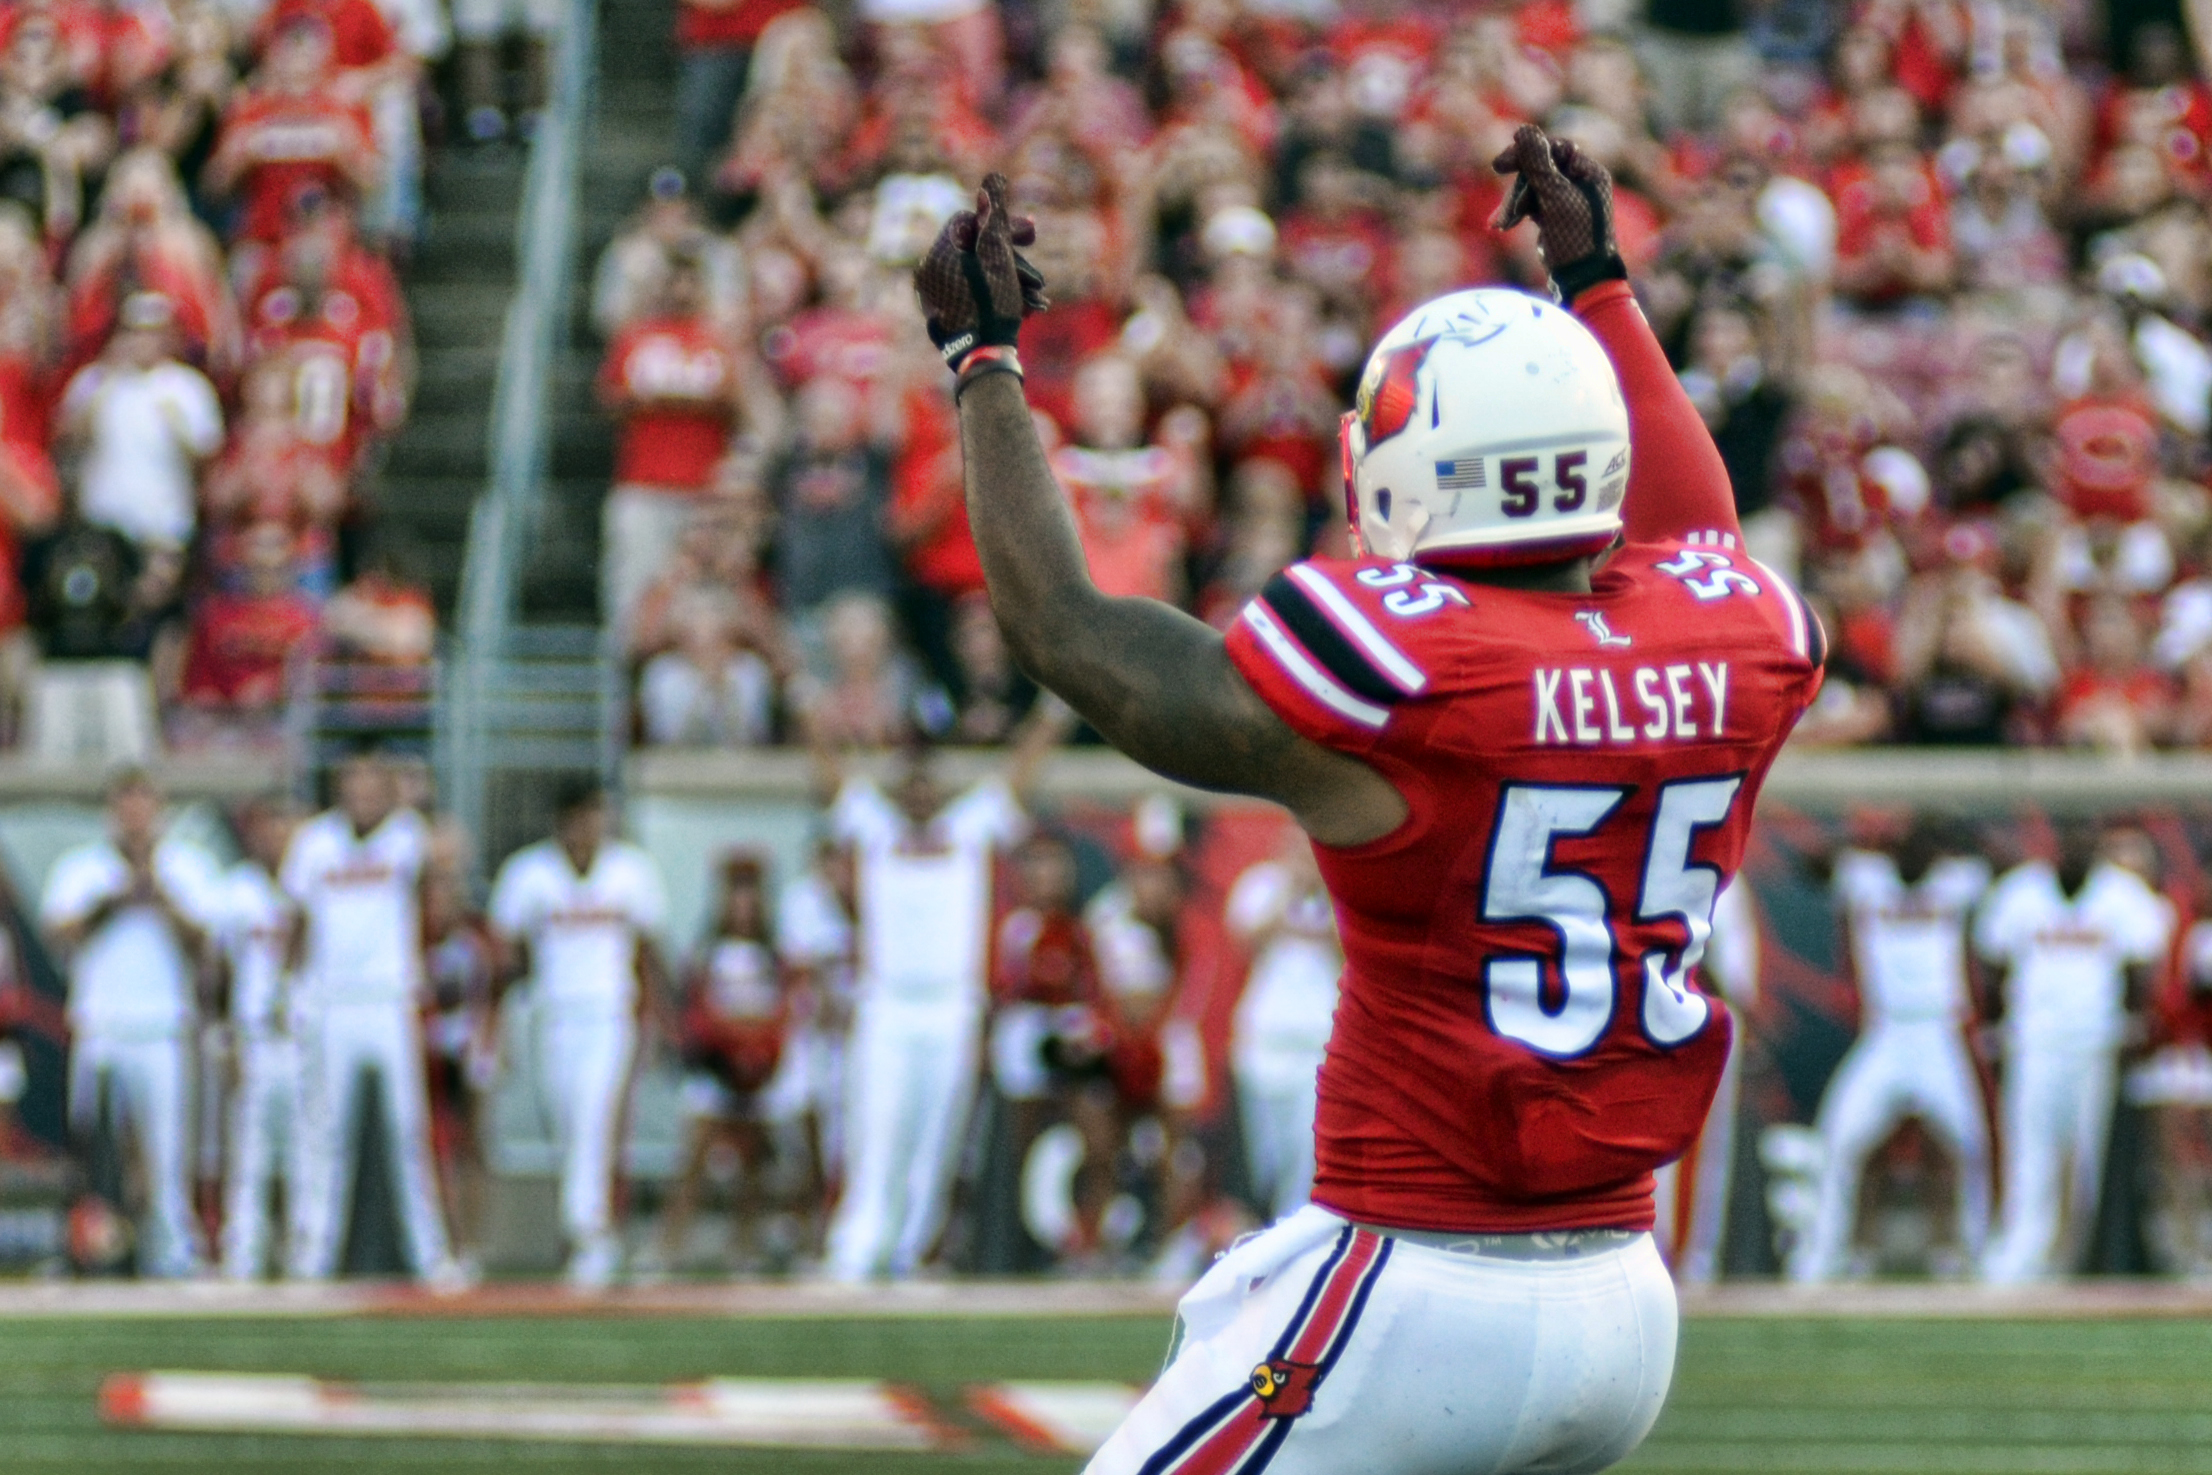 Keith Kelsey NFL Jersey